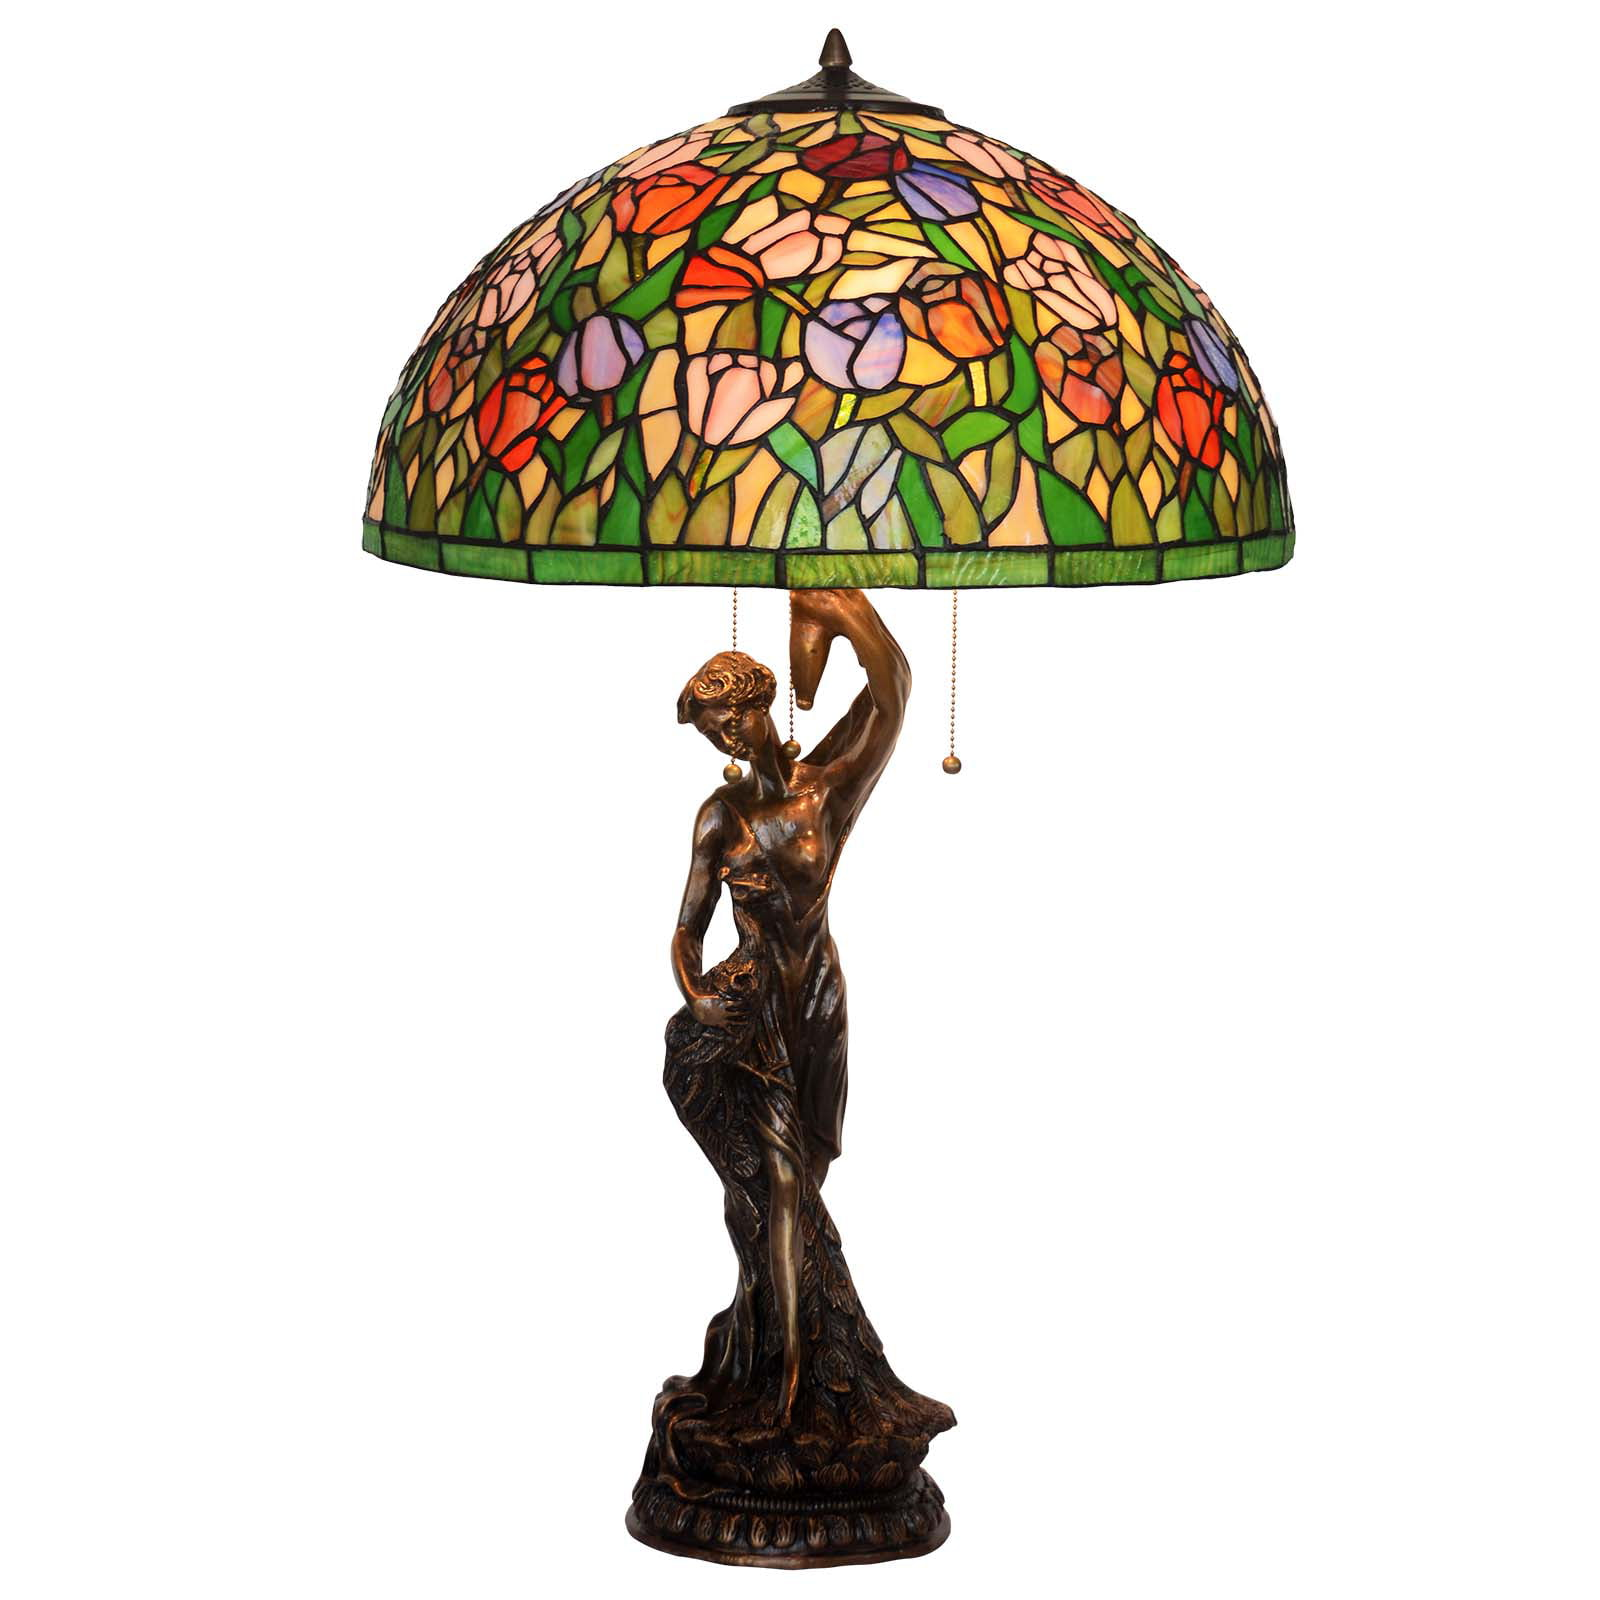 Bieye L 20 inches Tulip Tiffany Style Stained Glass Table Lamp